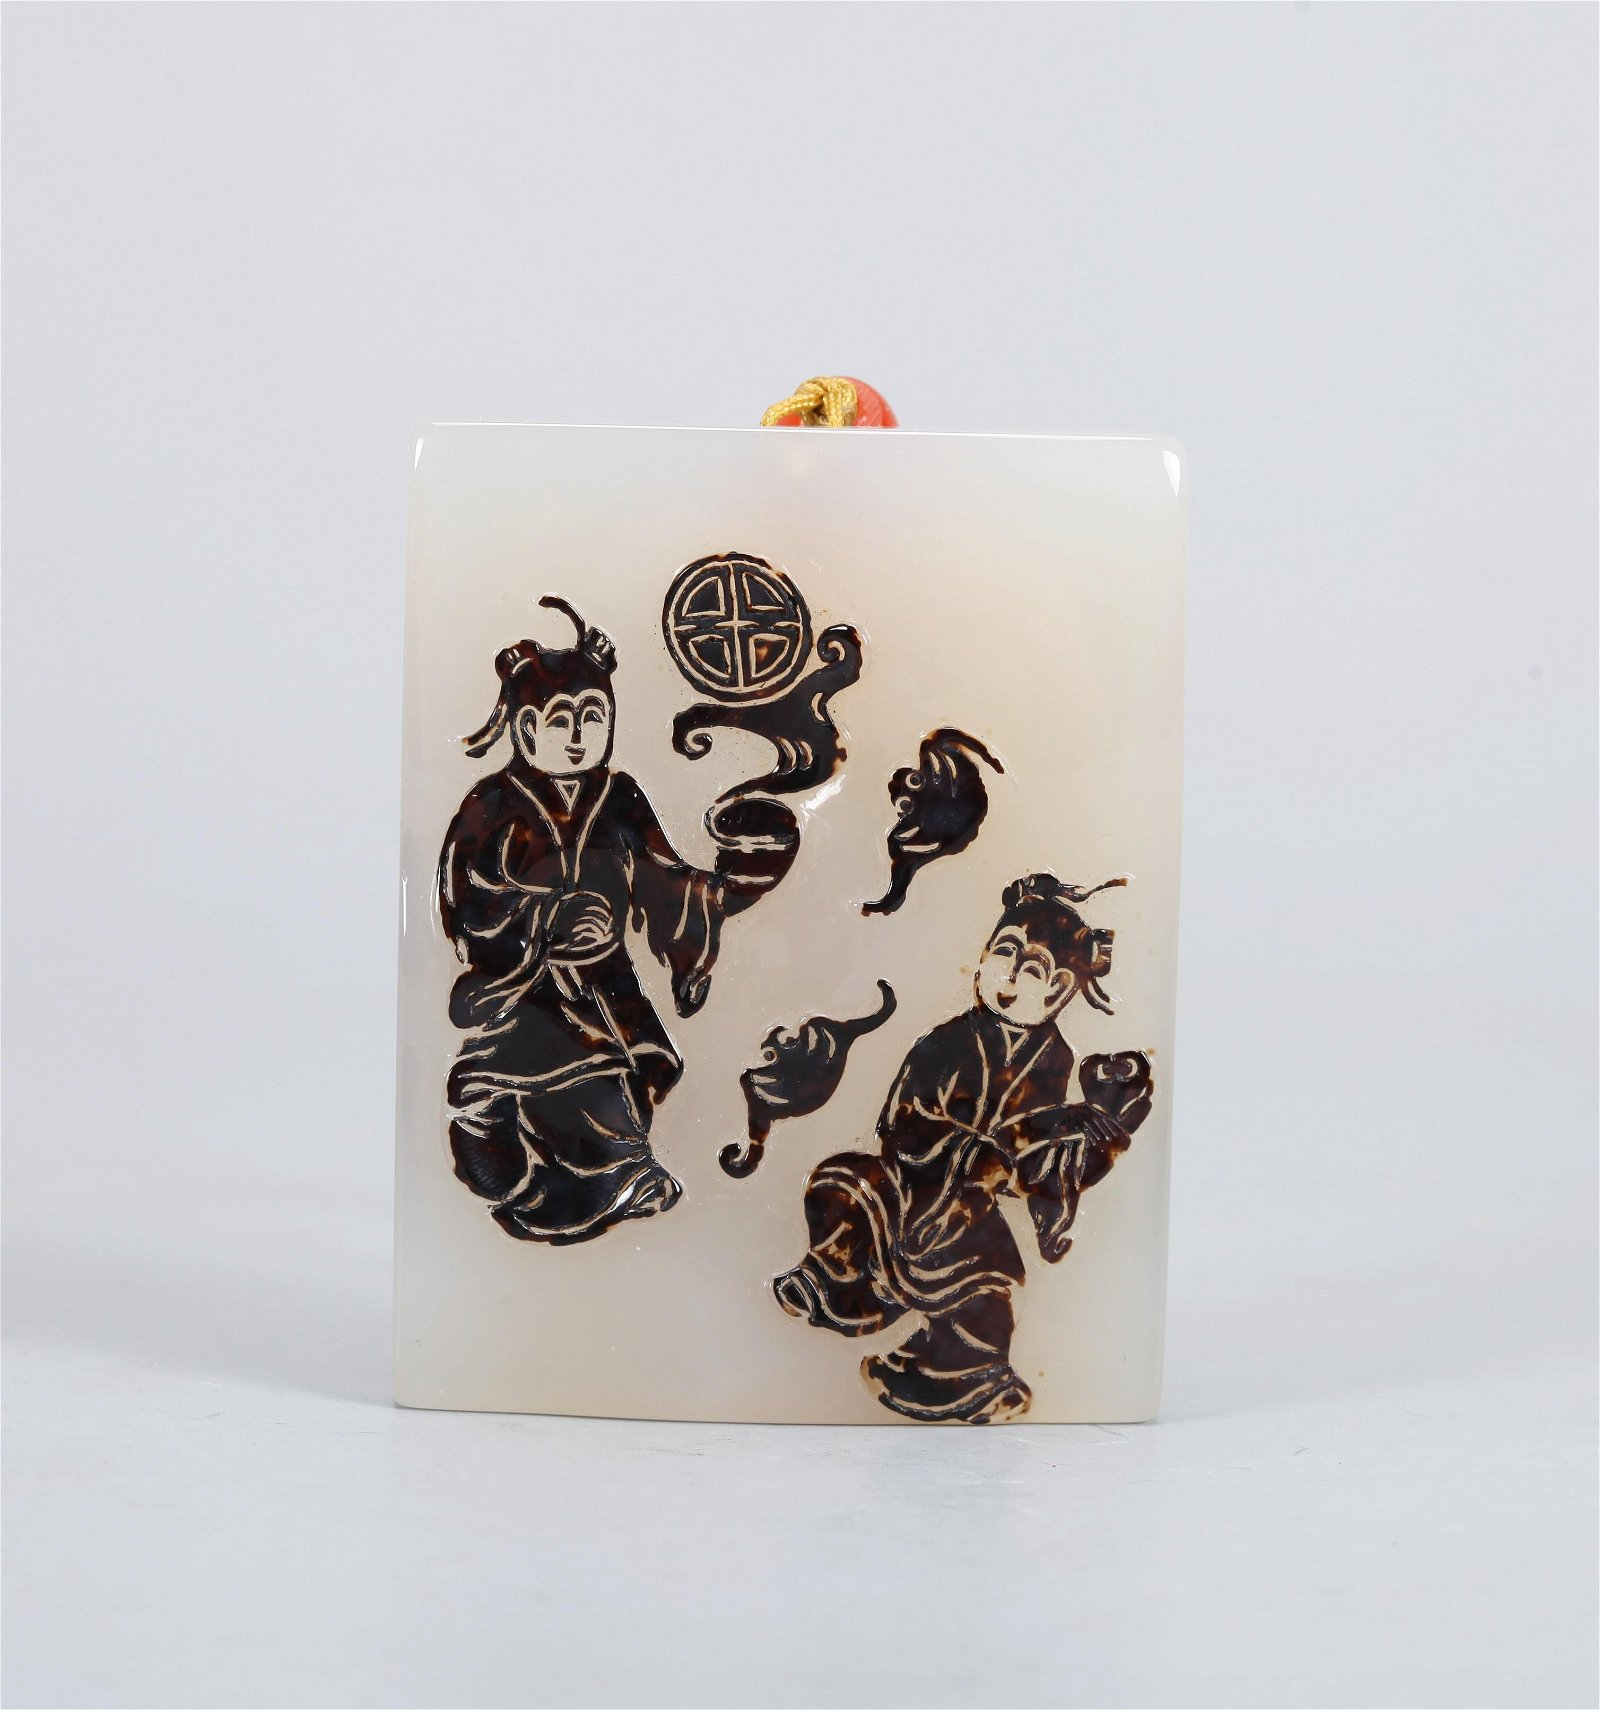 A CHINESE CARVED AGATE PENDANT, QING DYNASTY